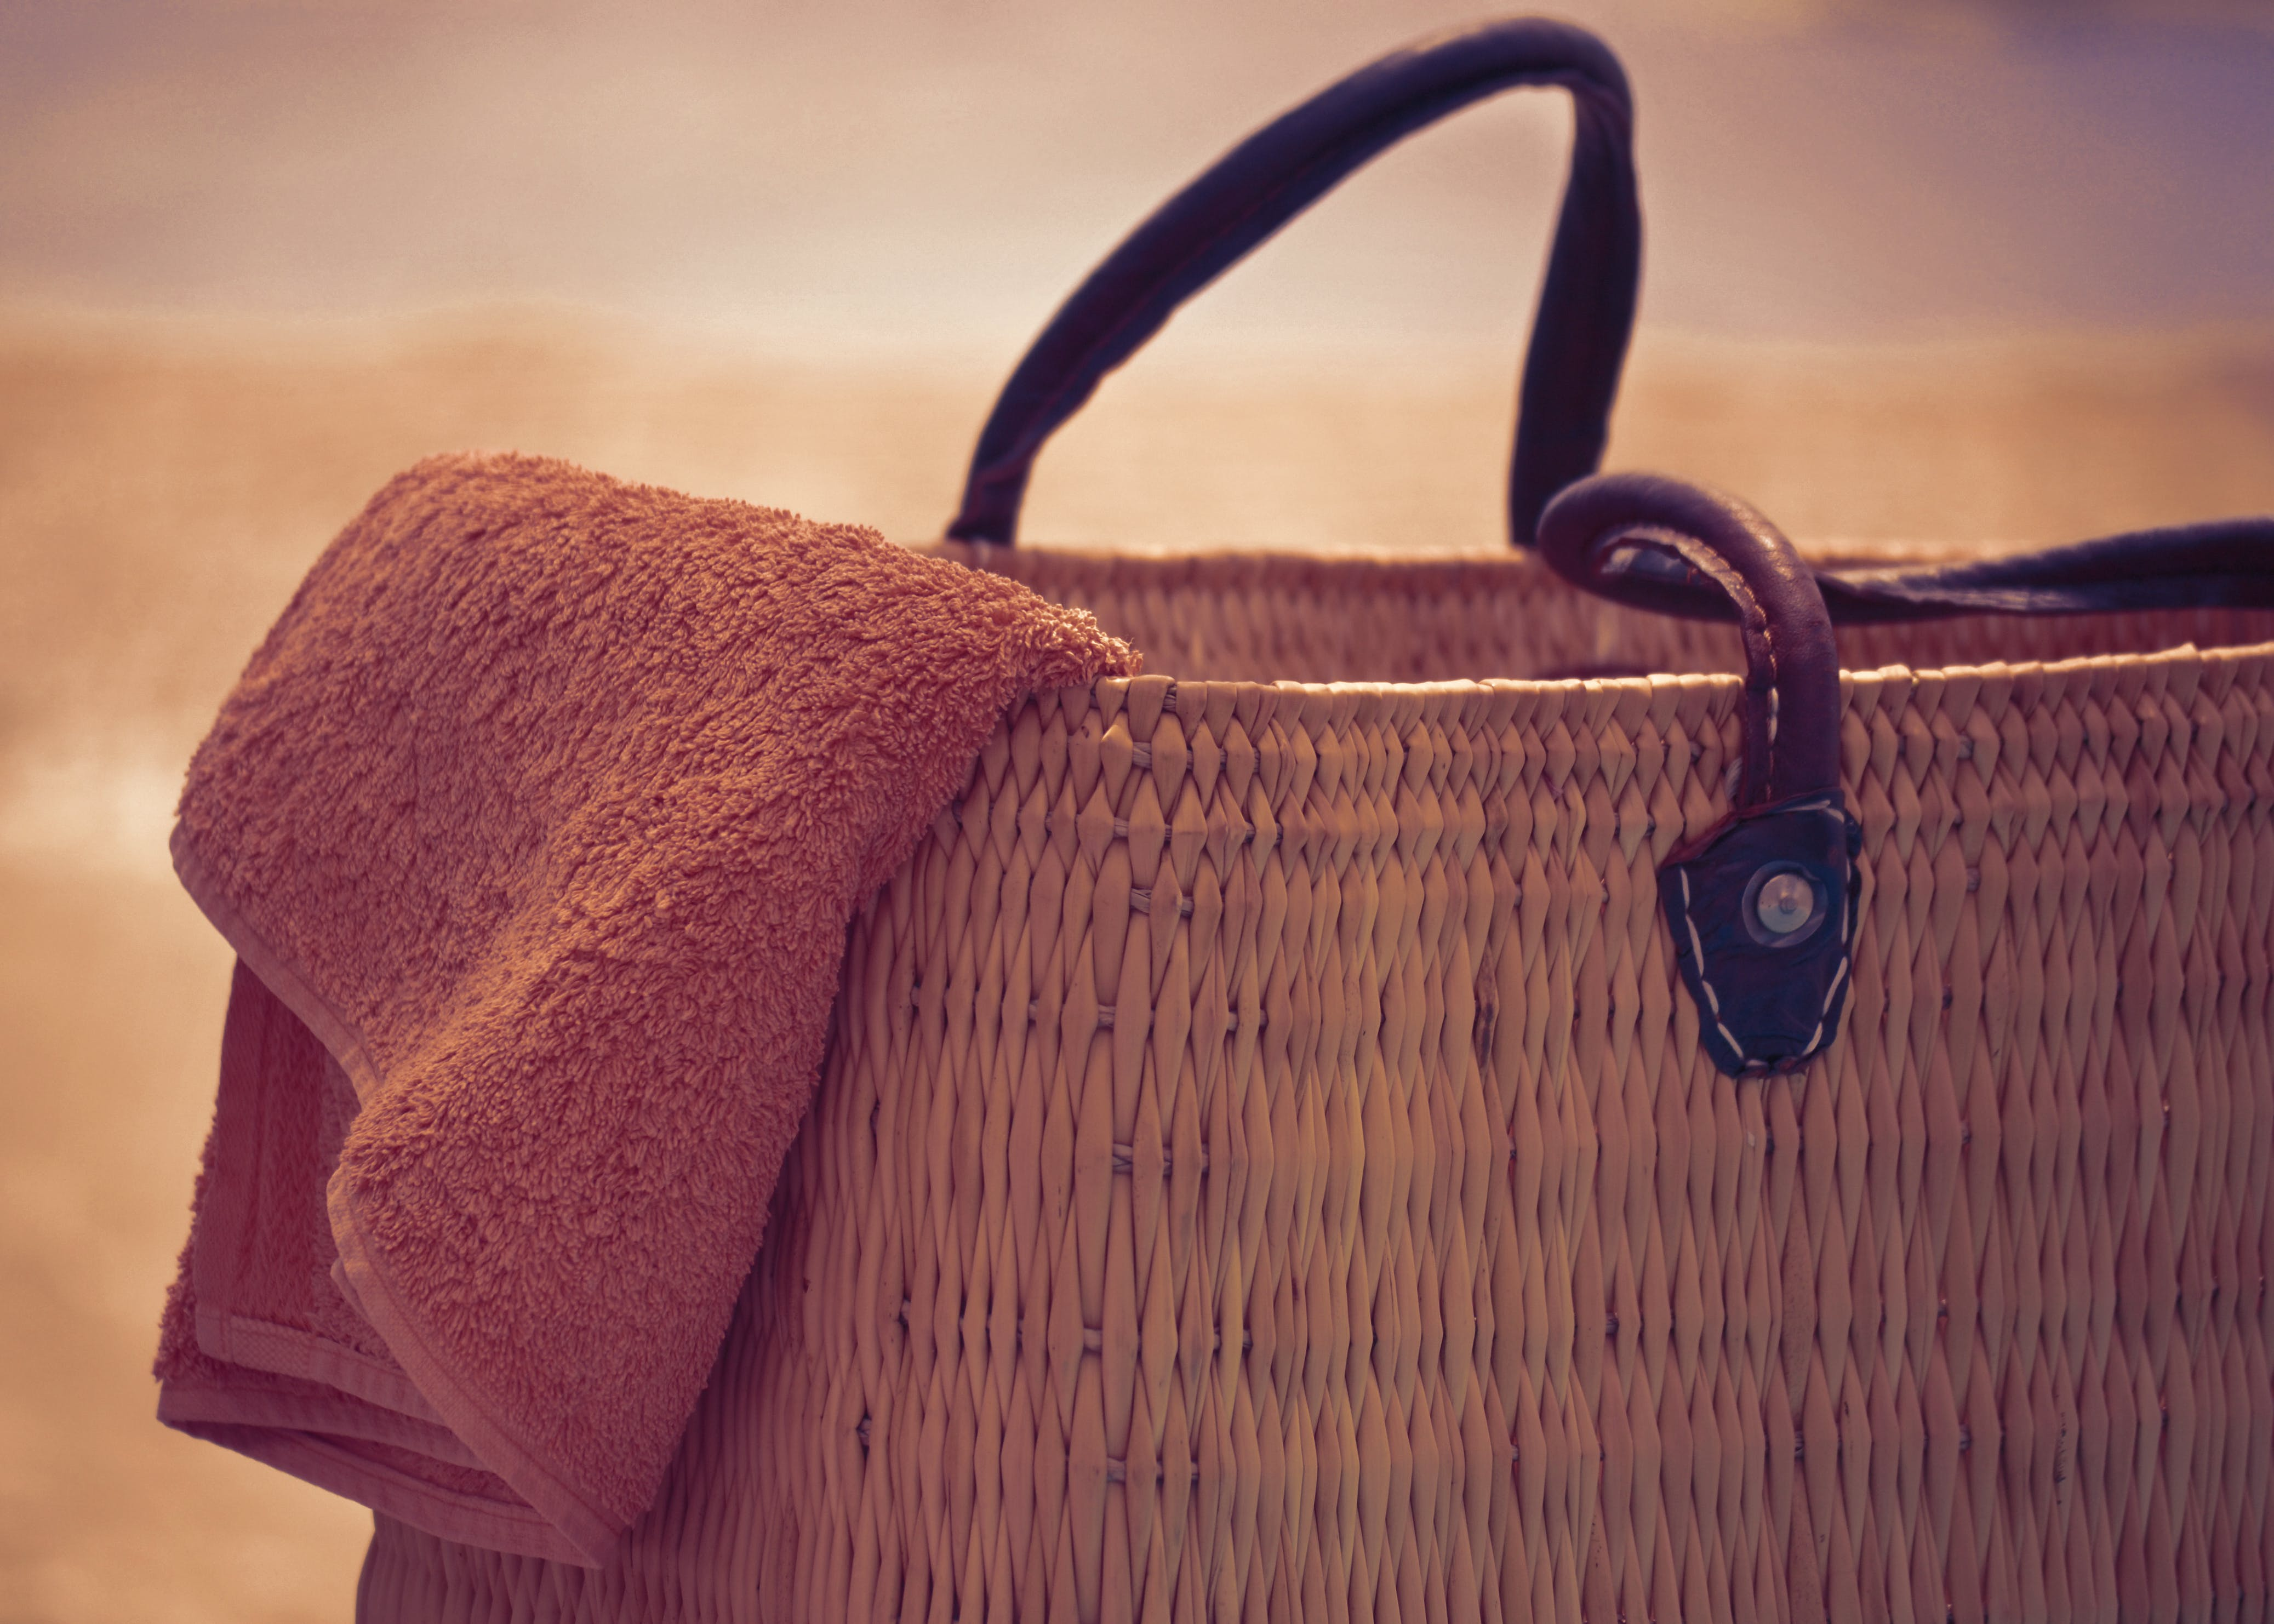 Close-up Photography of Brown Wicker Basket